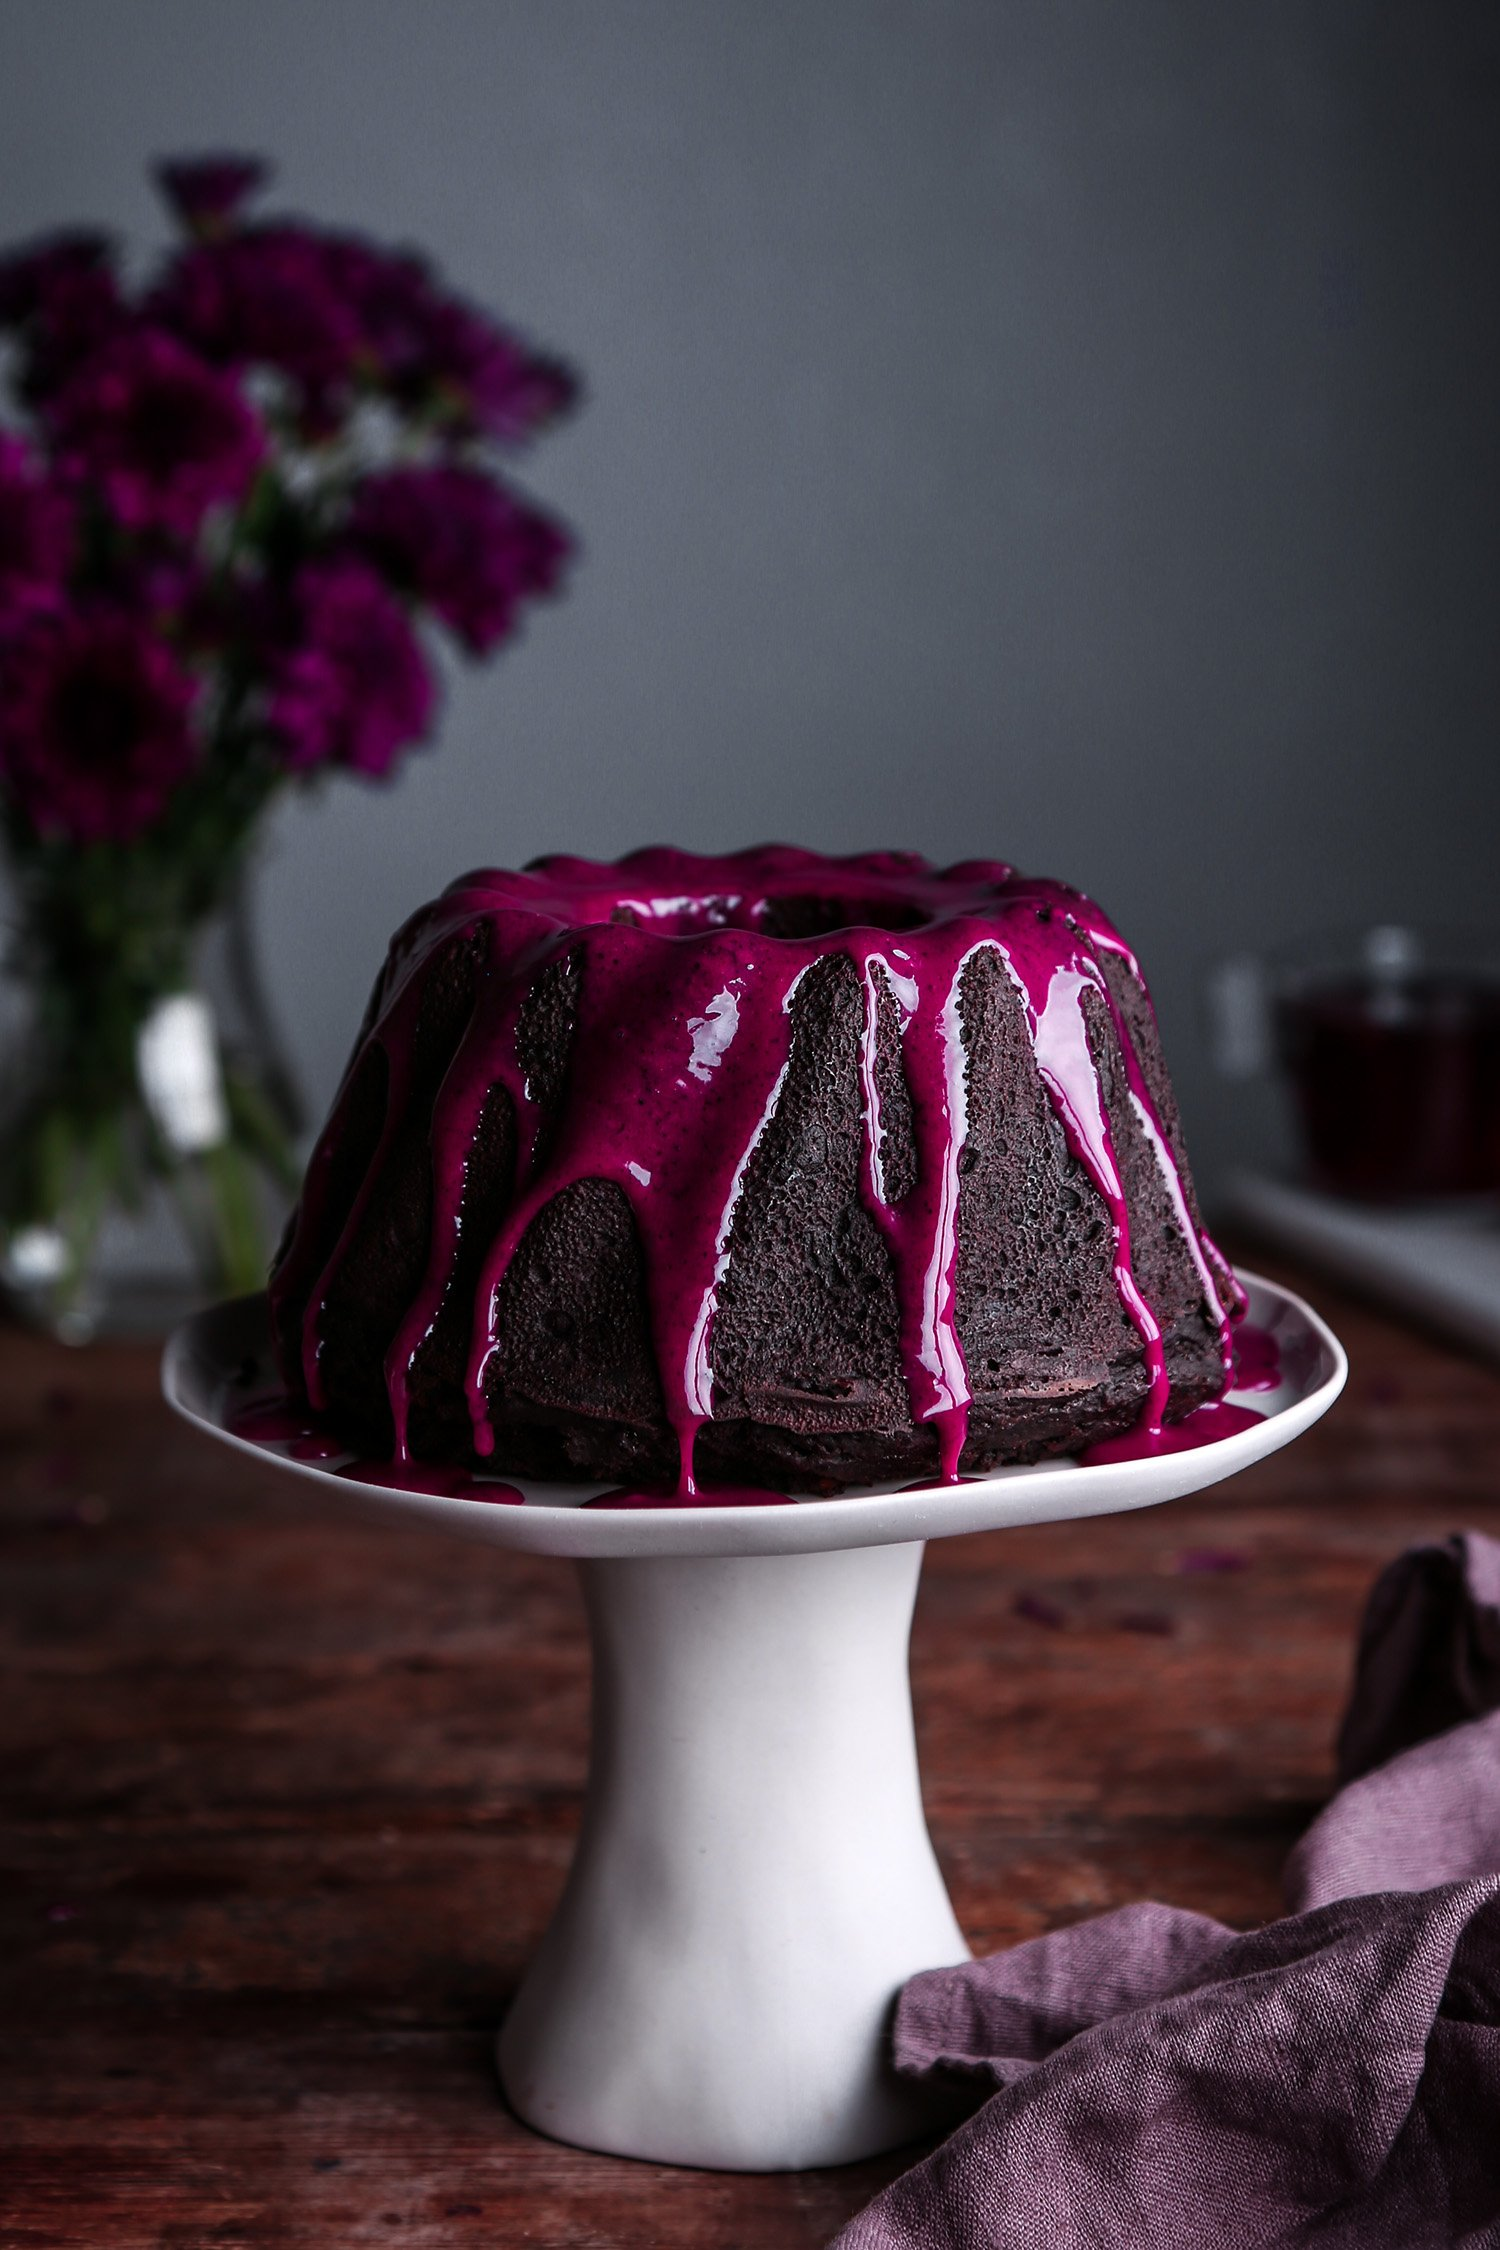 Chocolate Bundt Cake with Hibiscus Glaze